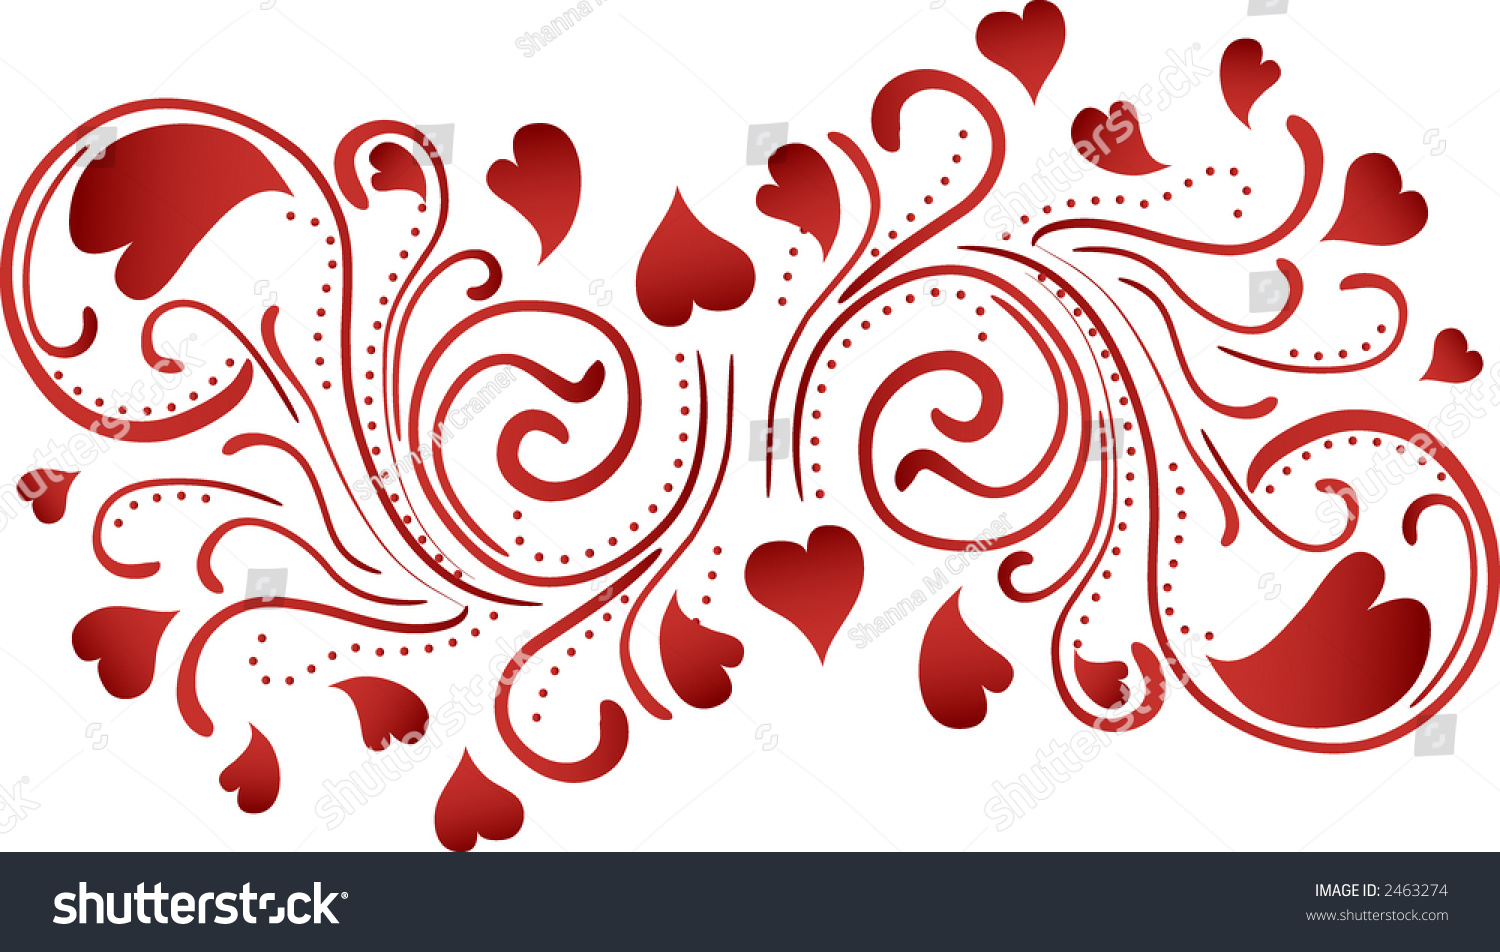 Heartbeat Pattern Heartbeat Vector Pattern Vector: Heart Floral Swirl Pattern Background Stock Vector